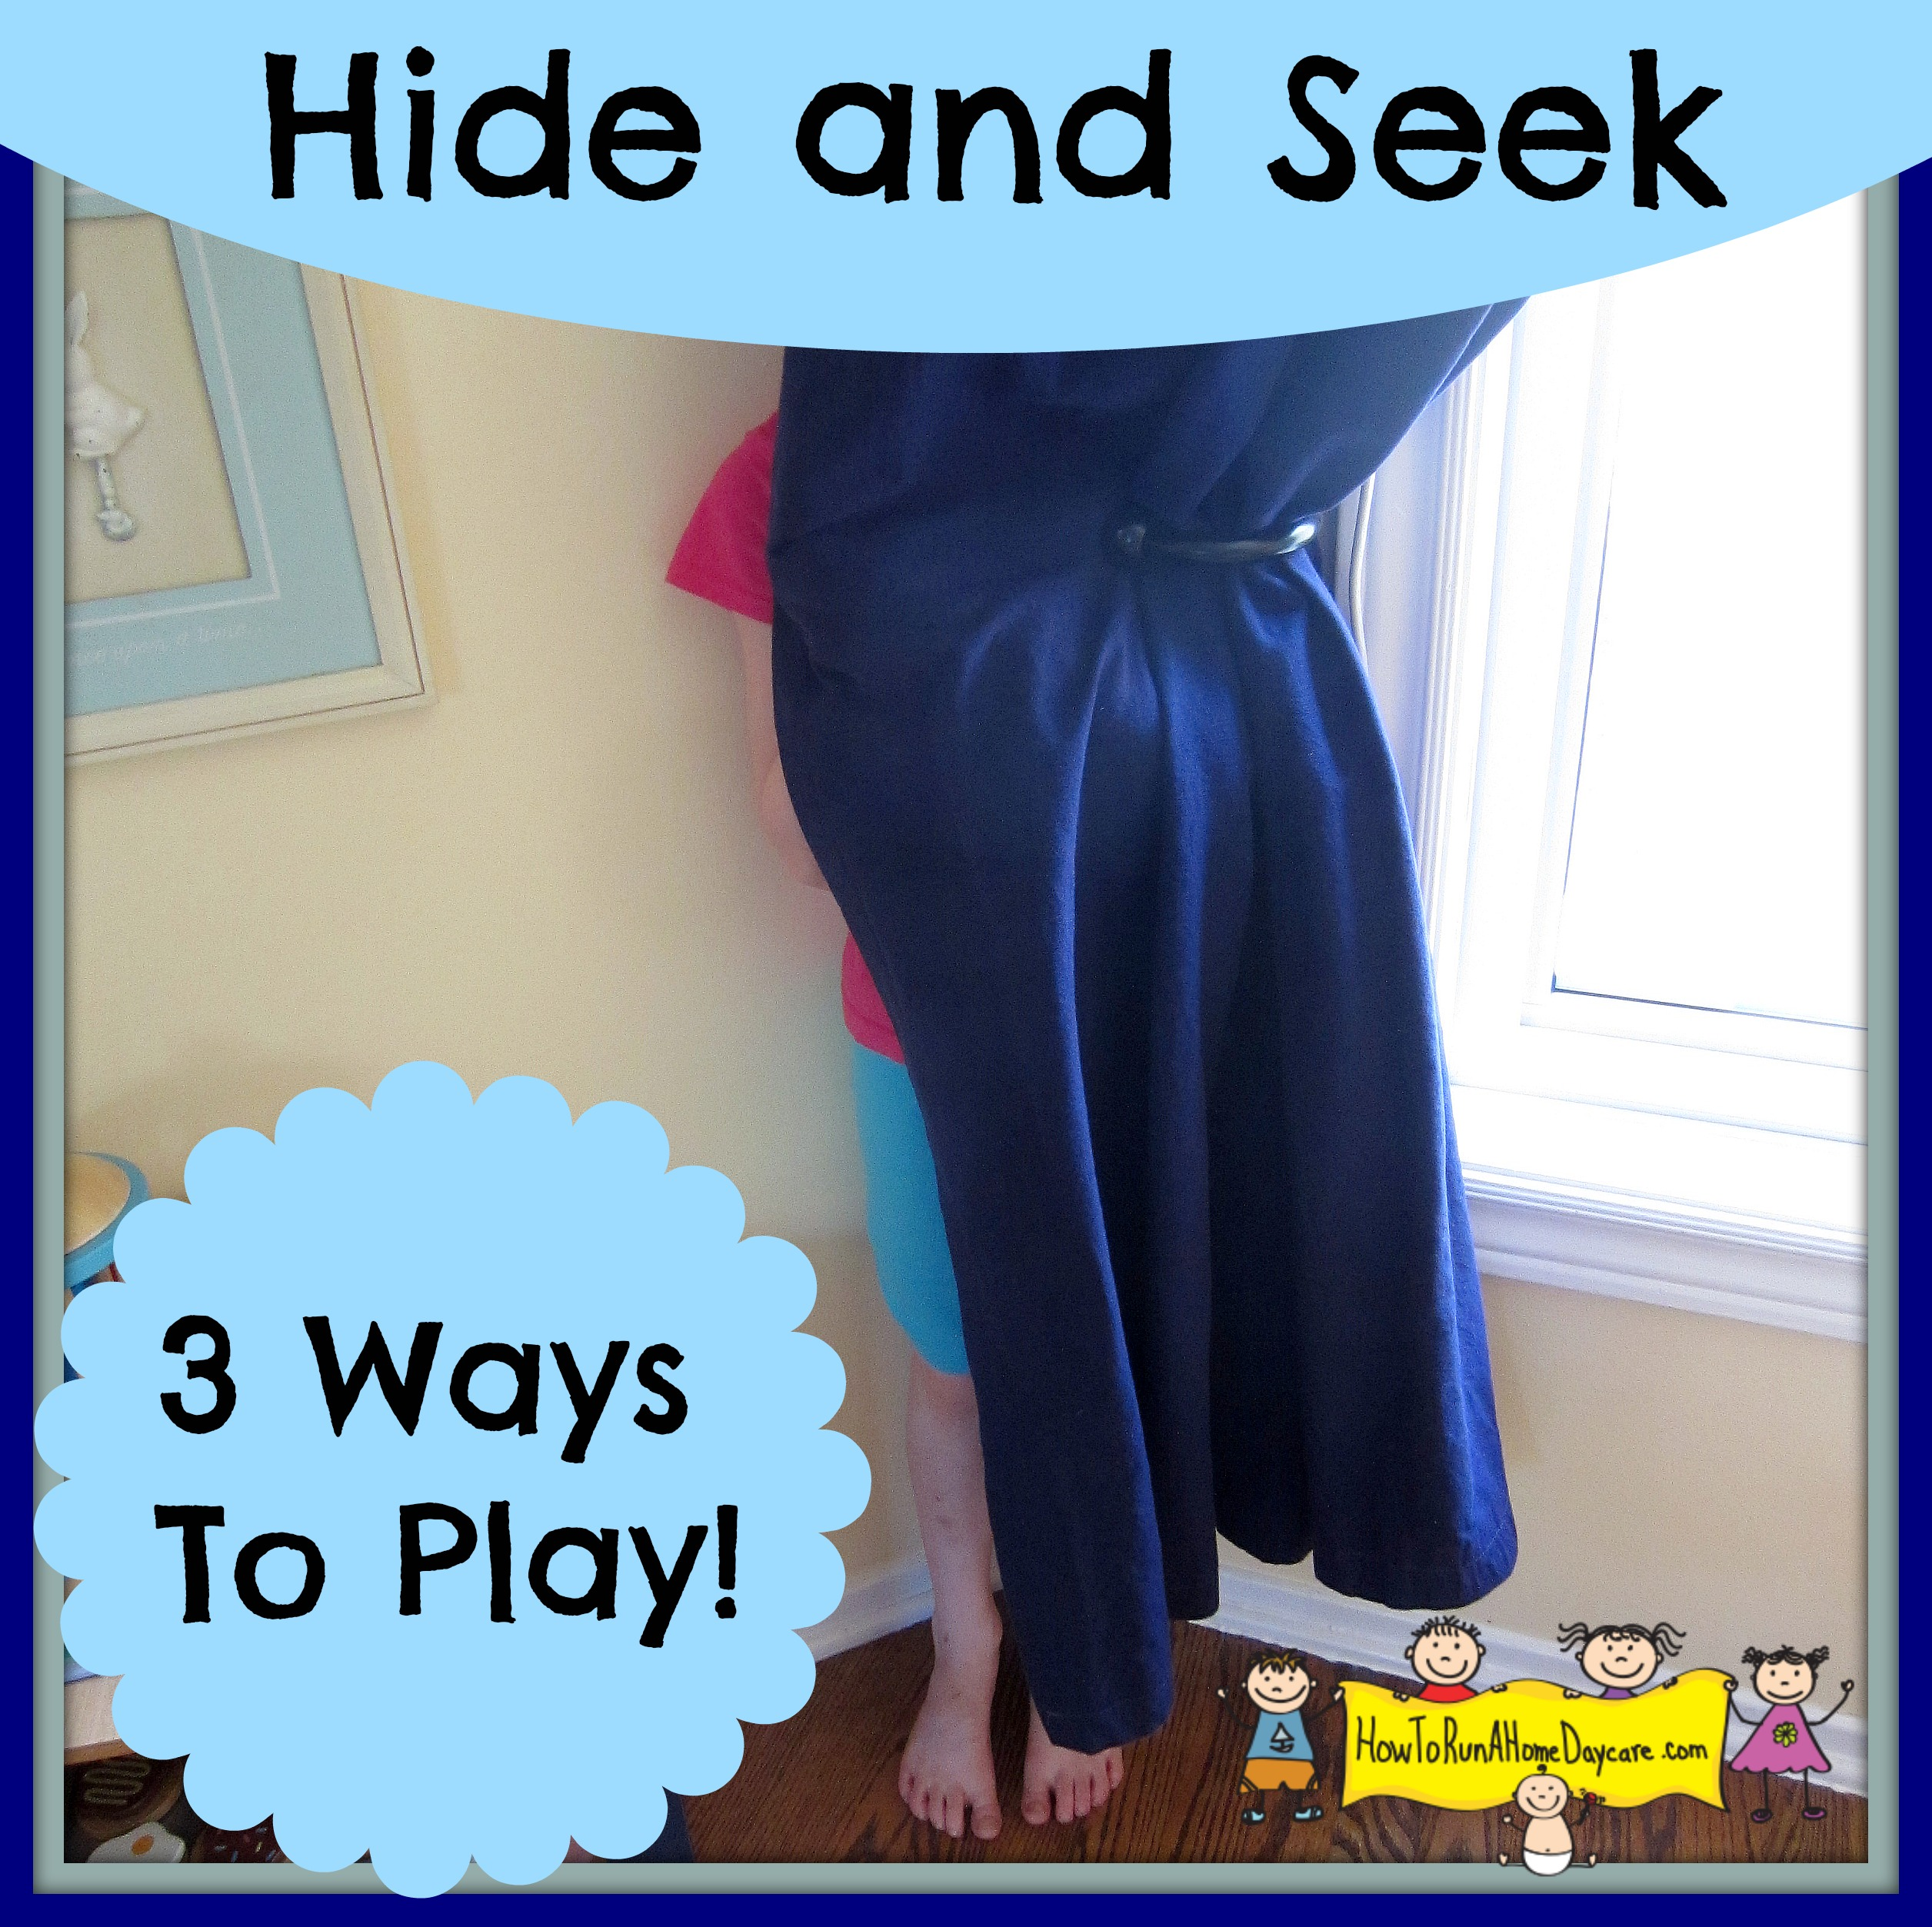 Hide And Seek Kids Hide And Seek 3 Ways To Play 100 Days Of Play Blog Hop How